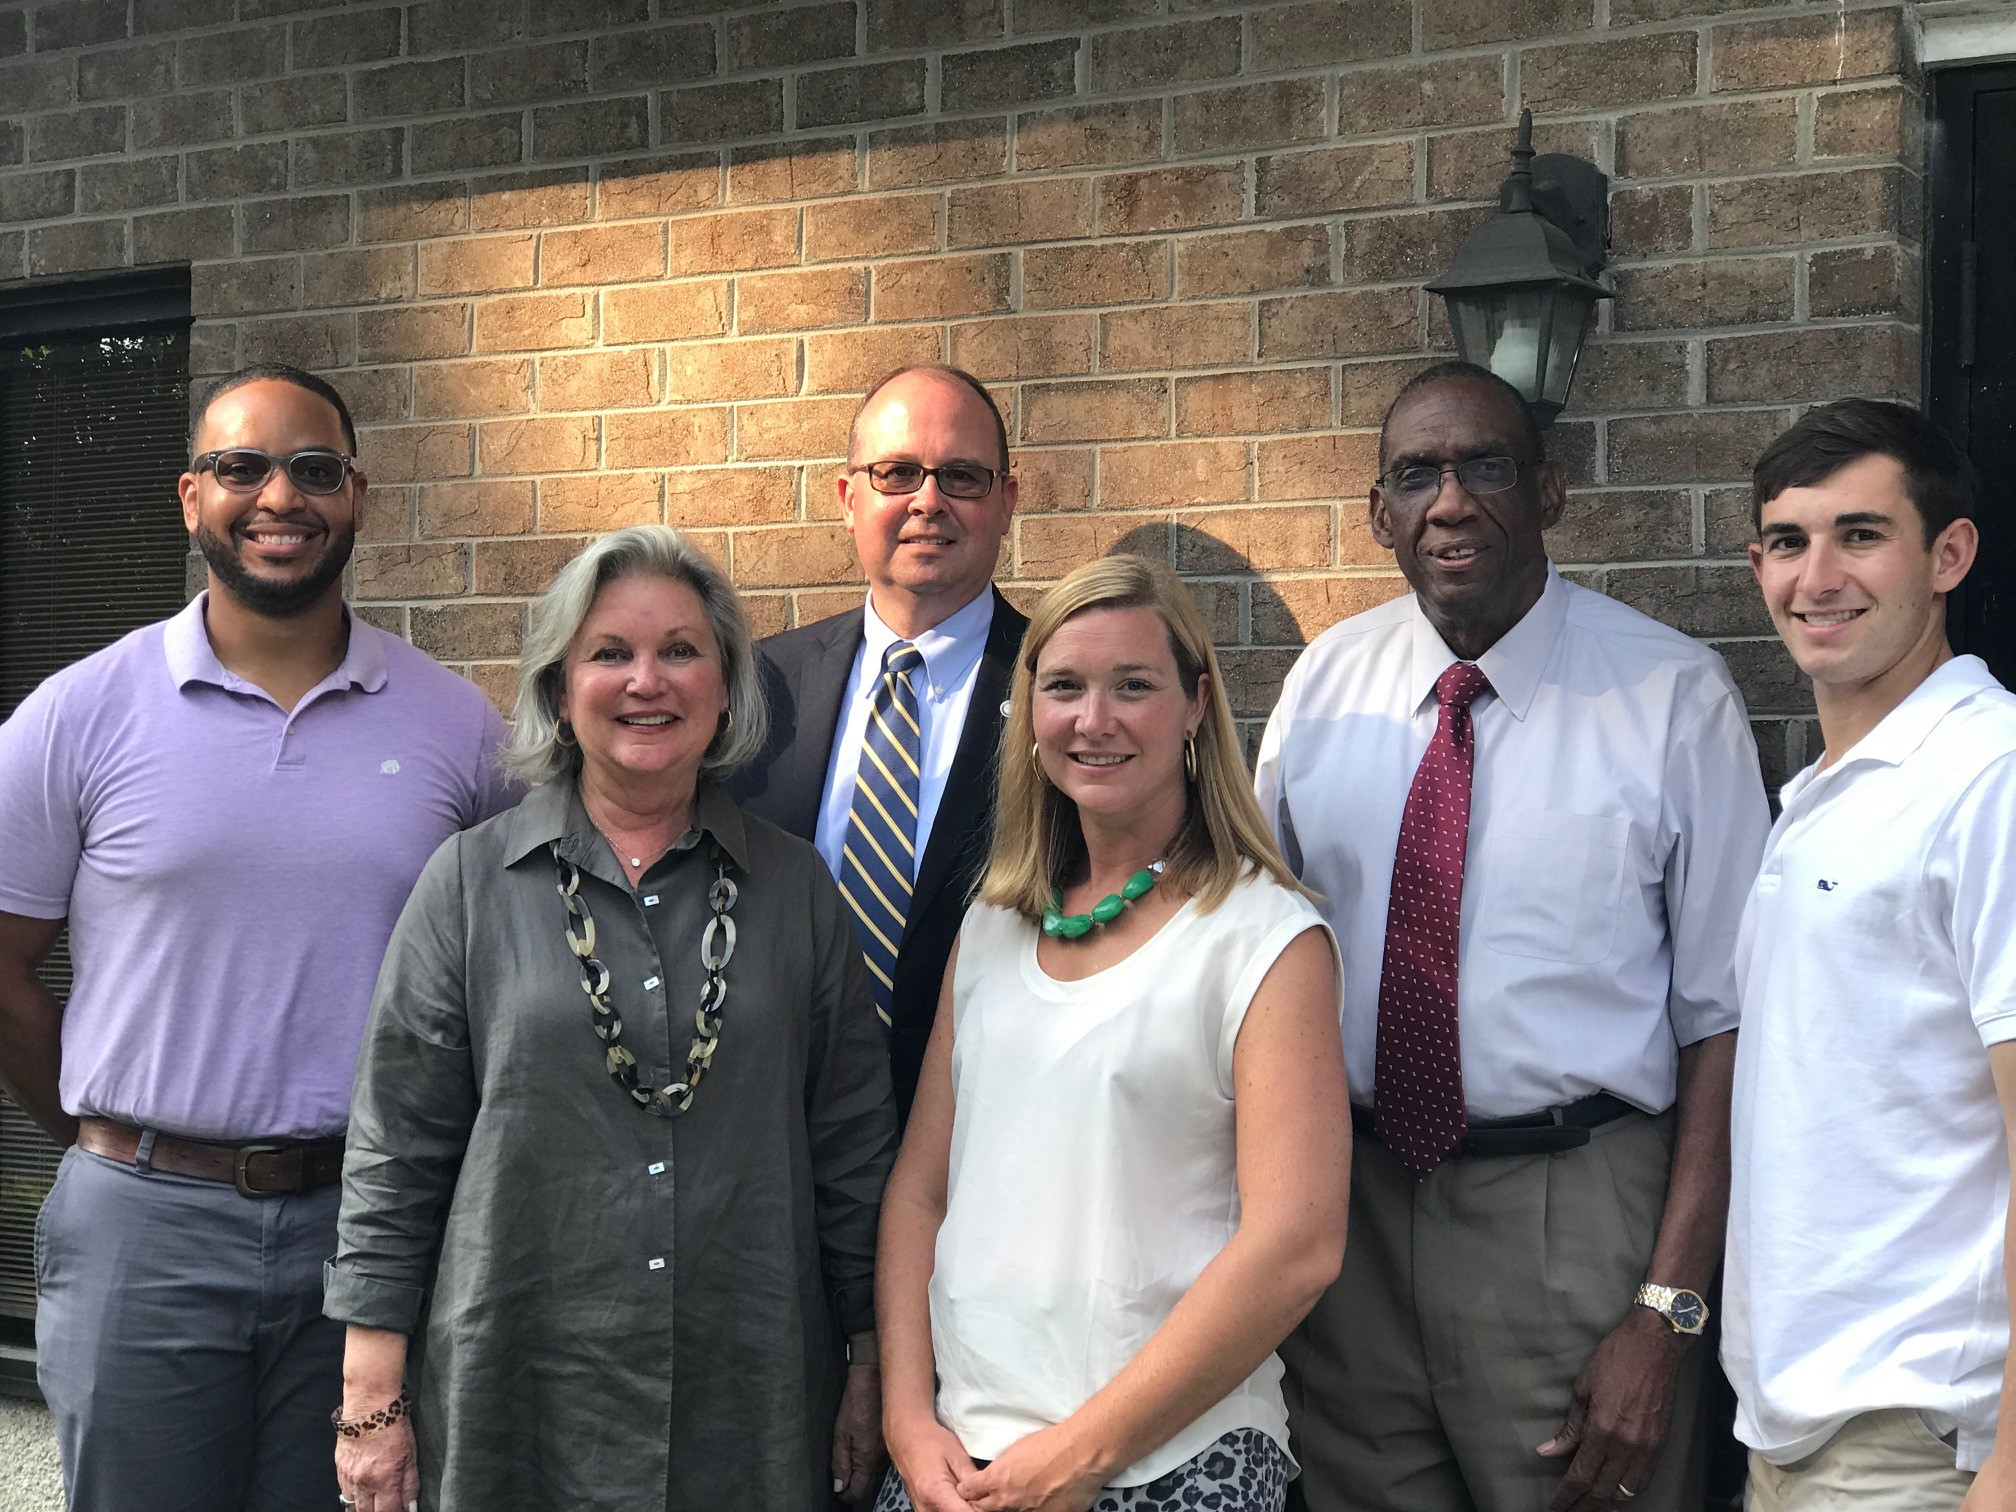 Pictured (left to right) are members of the Bertie-Hertford Community Foundation board of advisors: Guy Holley, Penny Rose, John Tayloe, Lindsay Vaughan, Daniel Smith and Jordan Harrell.